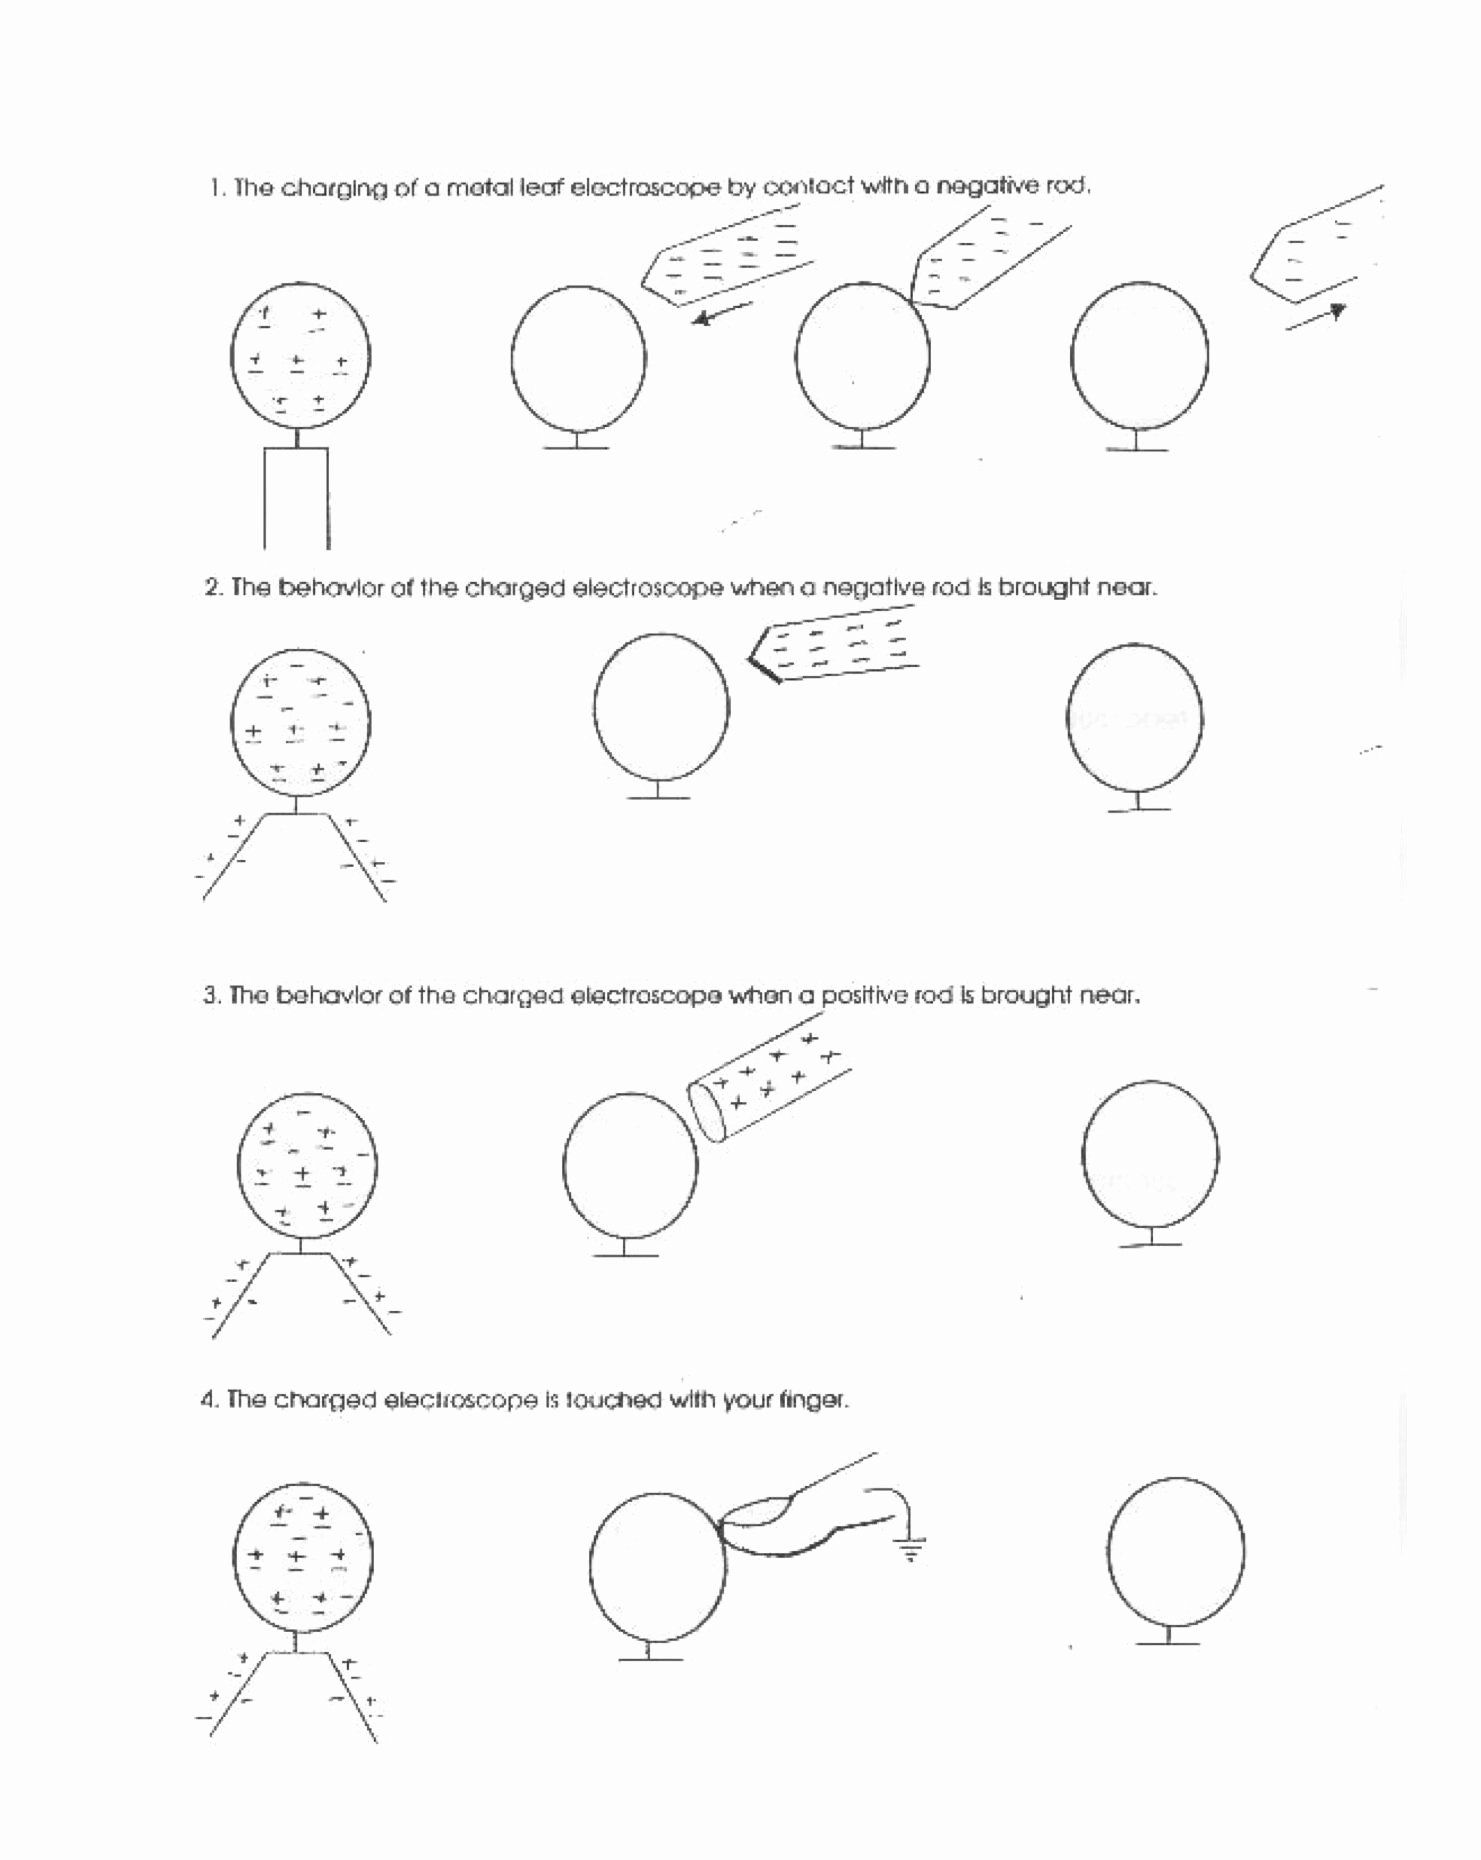 hight resolution of Static Electricity Worksheet Answers Inspirational Metal Leaf Electroscope  Contact \u0026 Induction Worksheet   Worksheets for kids